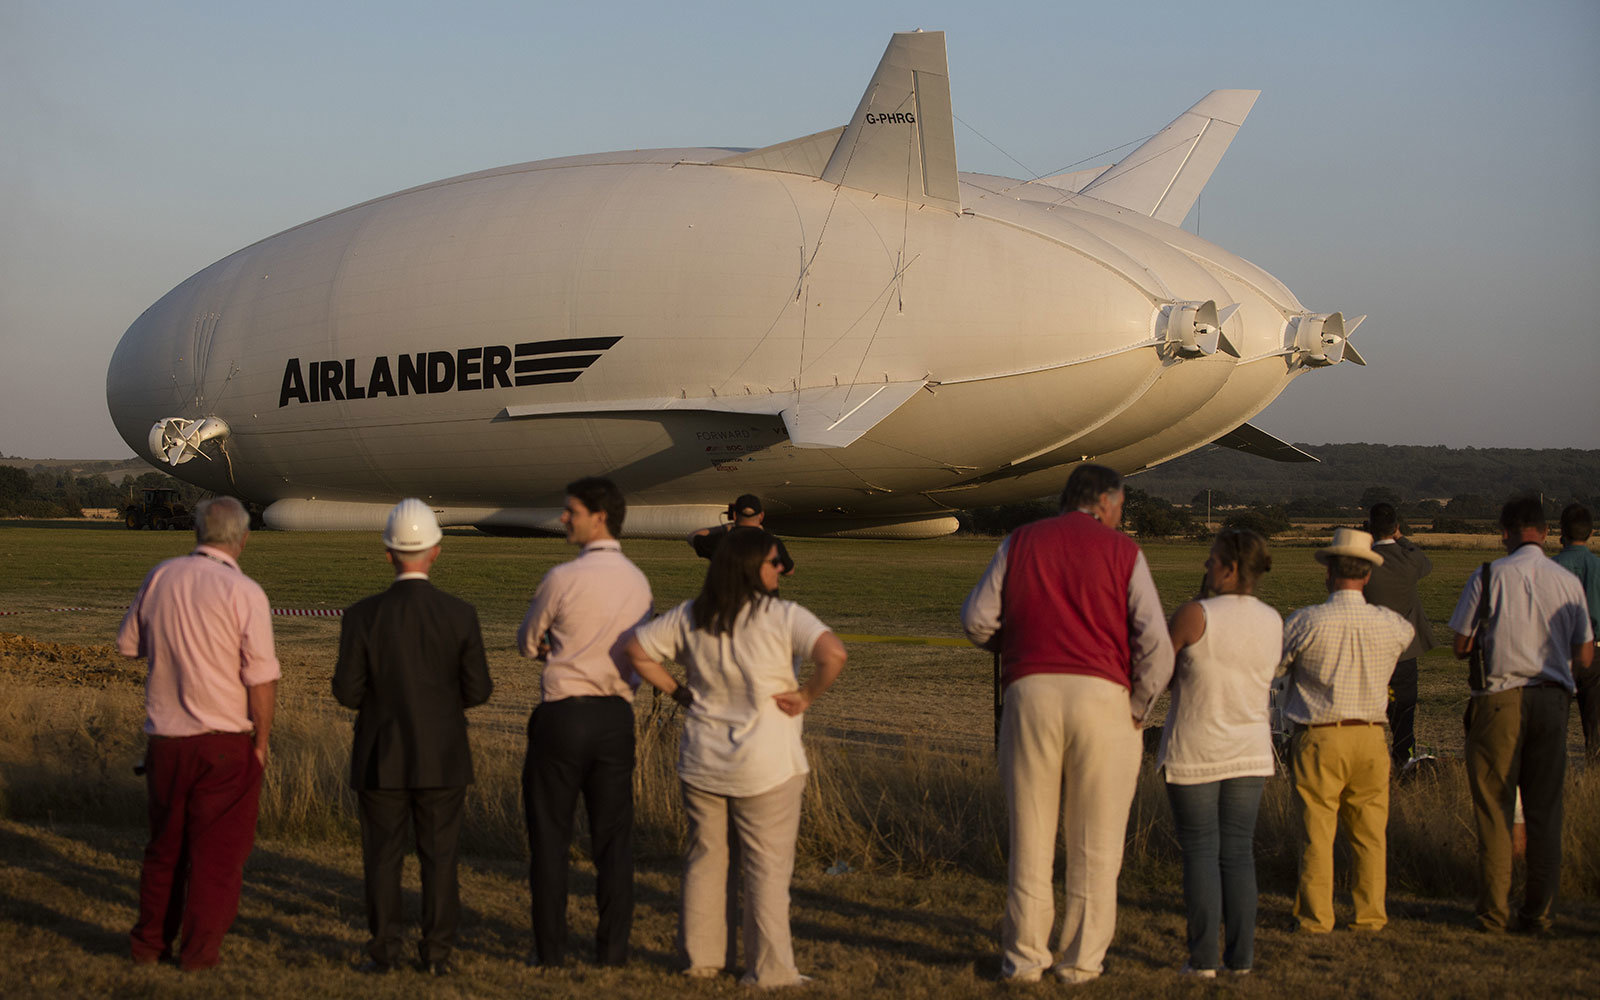 A crowd gathers at the Airlander's maiden flight in England.